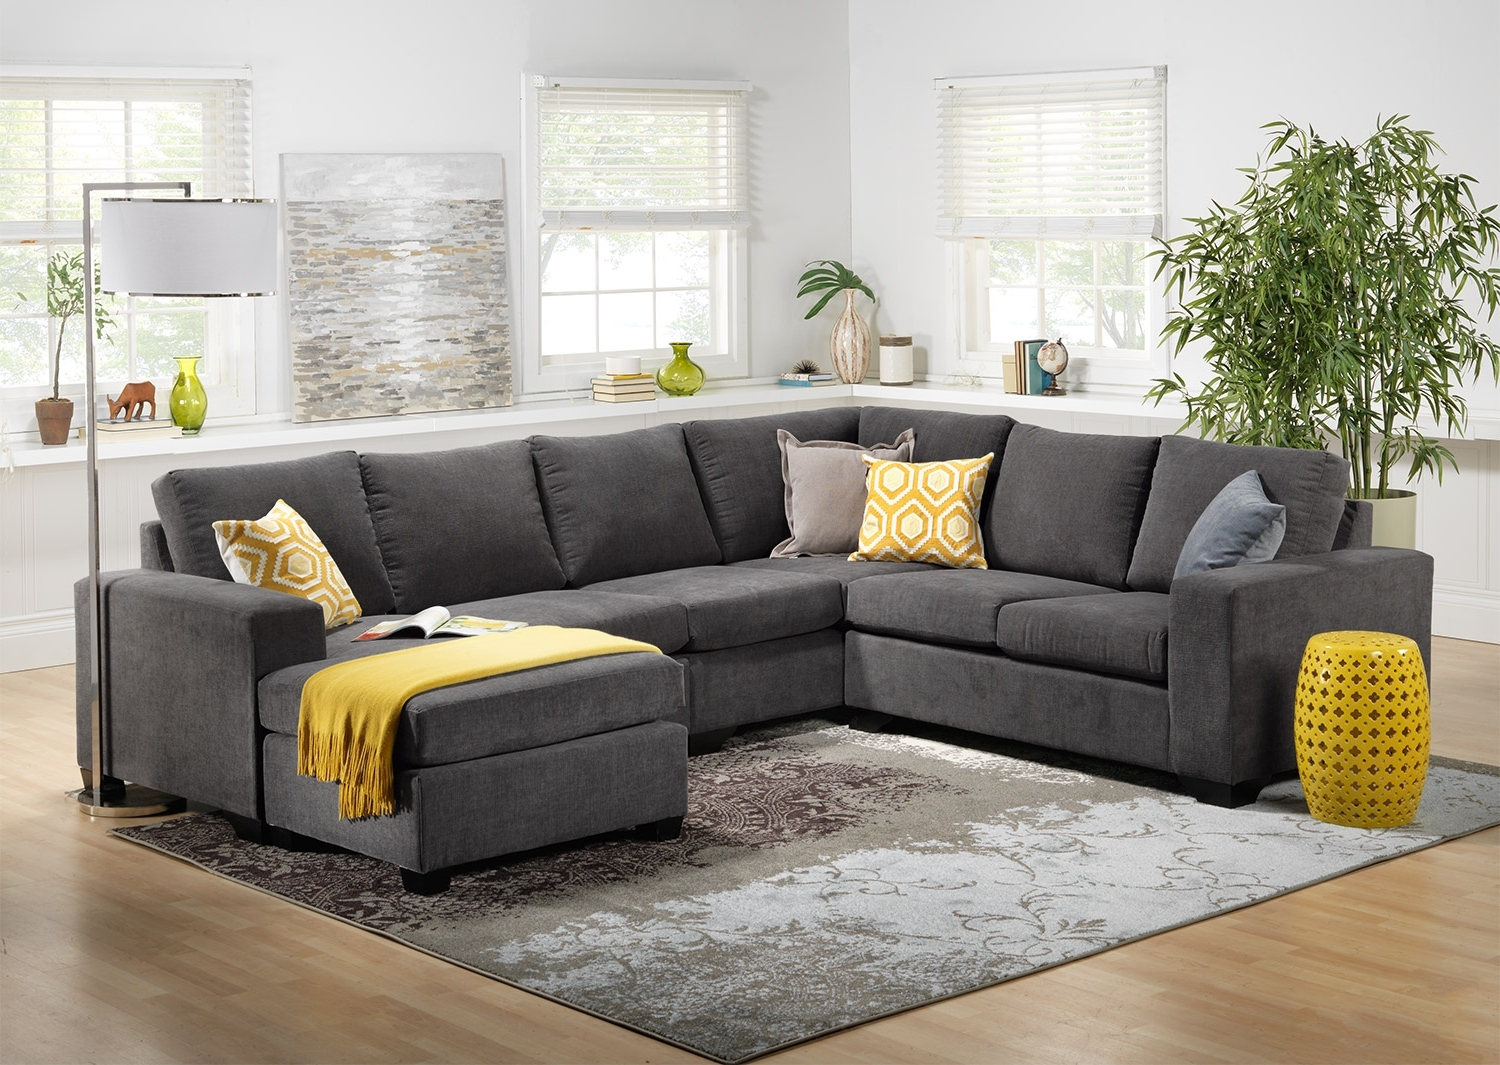 Sectional Sofas At Bc Canada In Recent Danielle 3 Piece Sectional With Right Facing Corner Wedge – Grey (View 12 of 15)